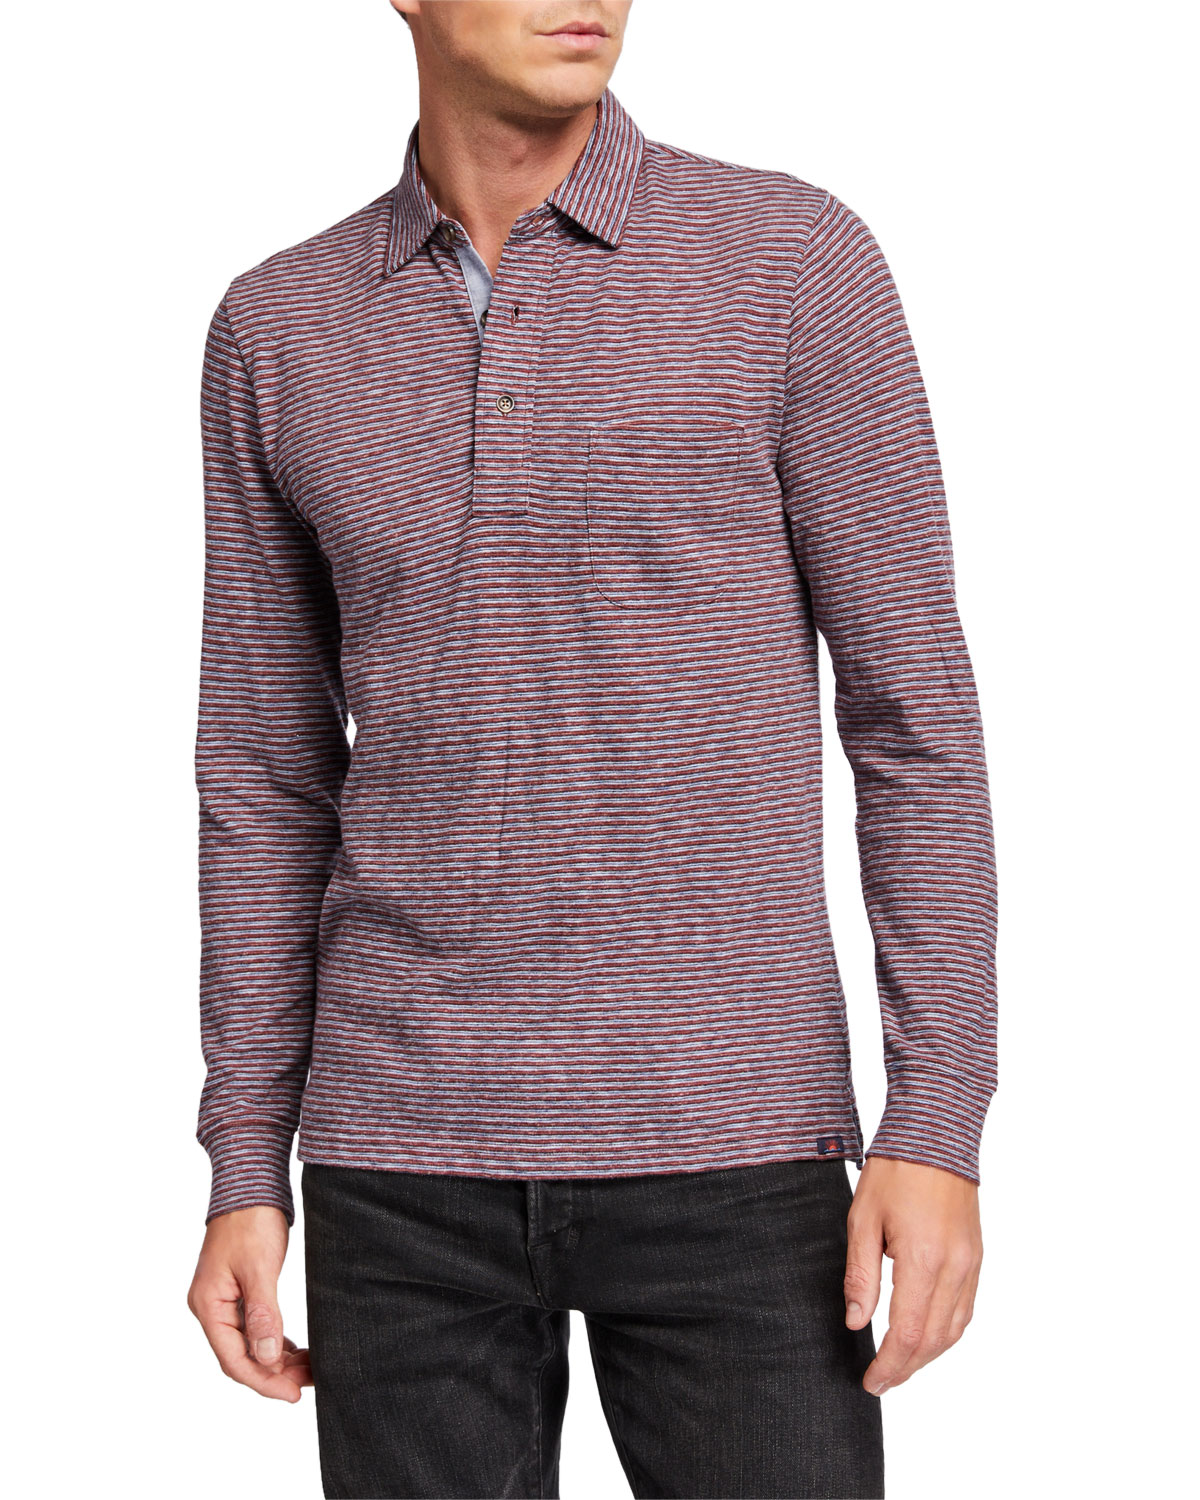 Faherty T-shirts MEN'S LUXE HEATHERED LONG-SLEEVE POLO SHIRT